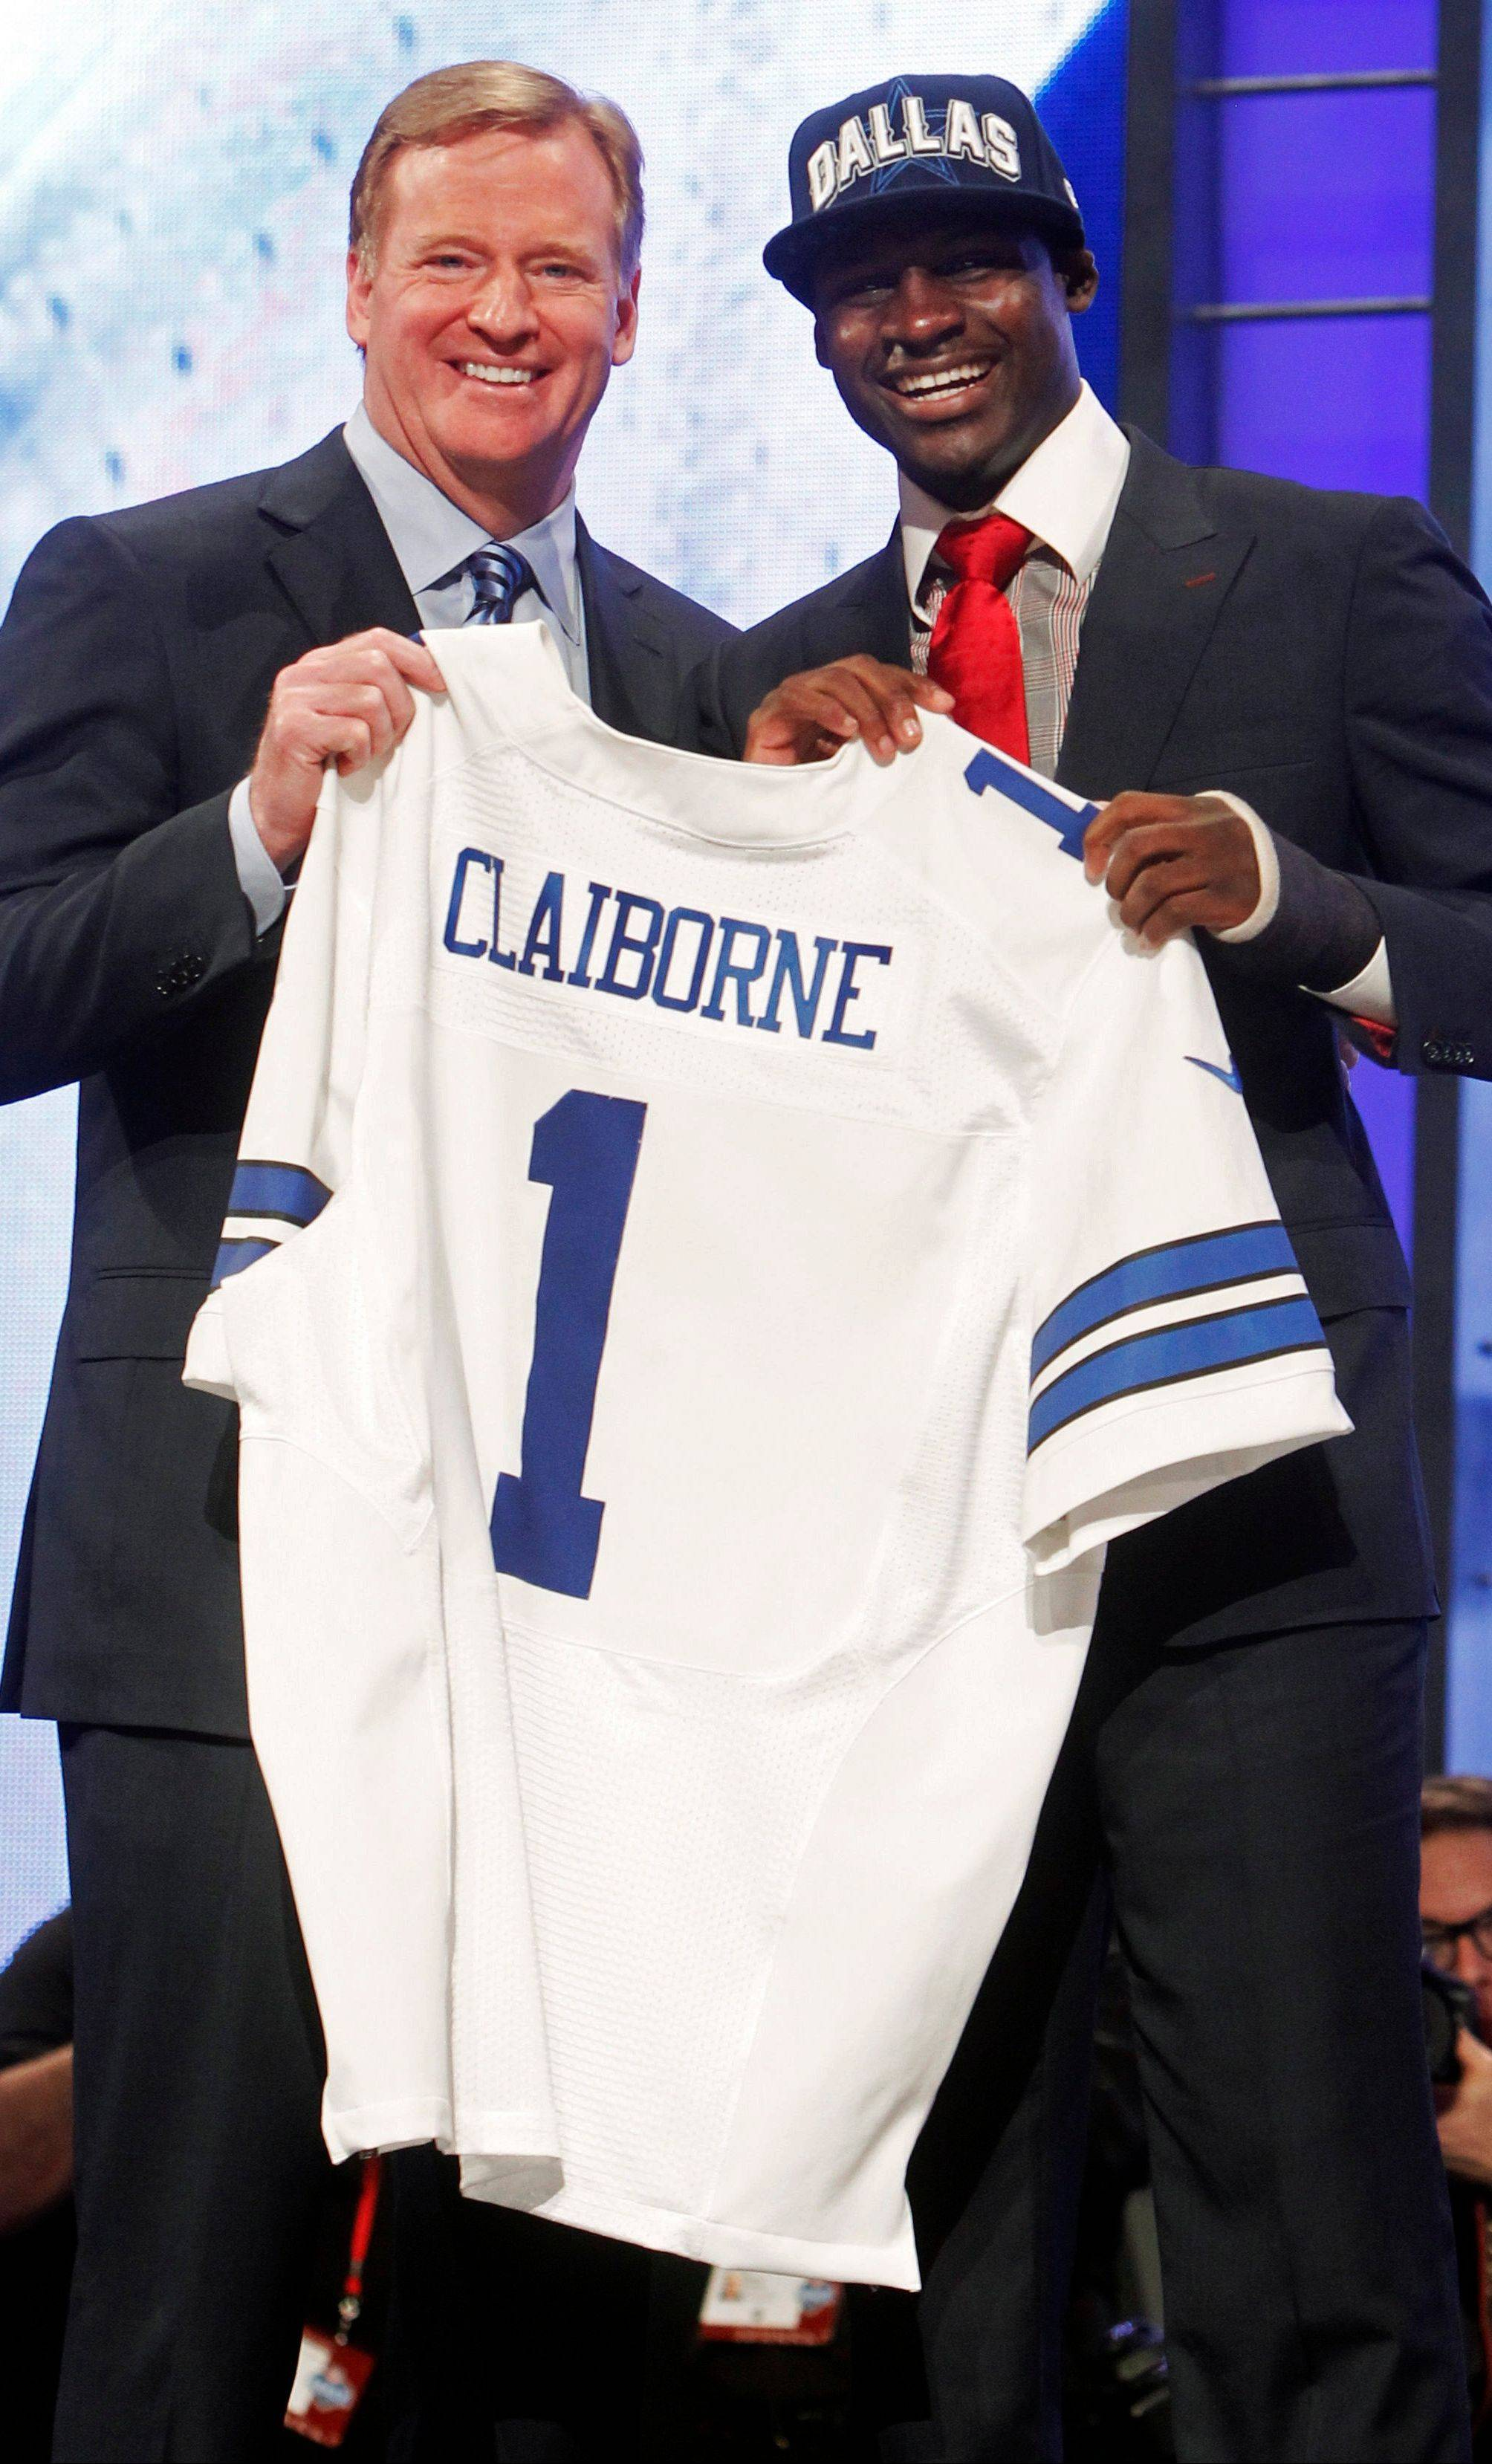 LSU cornerback Morris Claiborne with NFL Commissioner Roger Goodell Thursday after being selected as the sixth pick overall by the Dallas Cowboys in the first round of the NFL Draft at Radio City Music Hall.